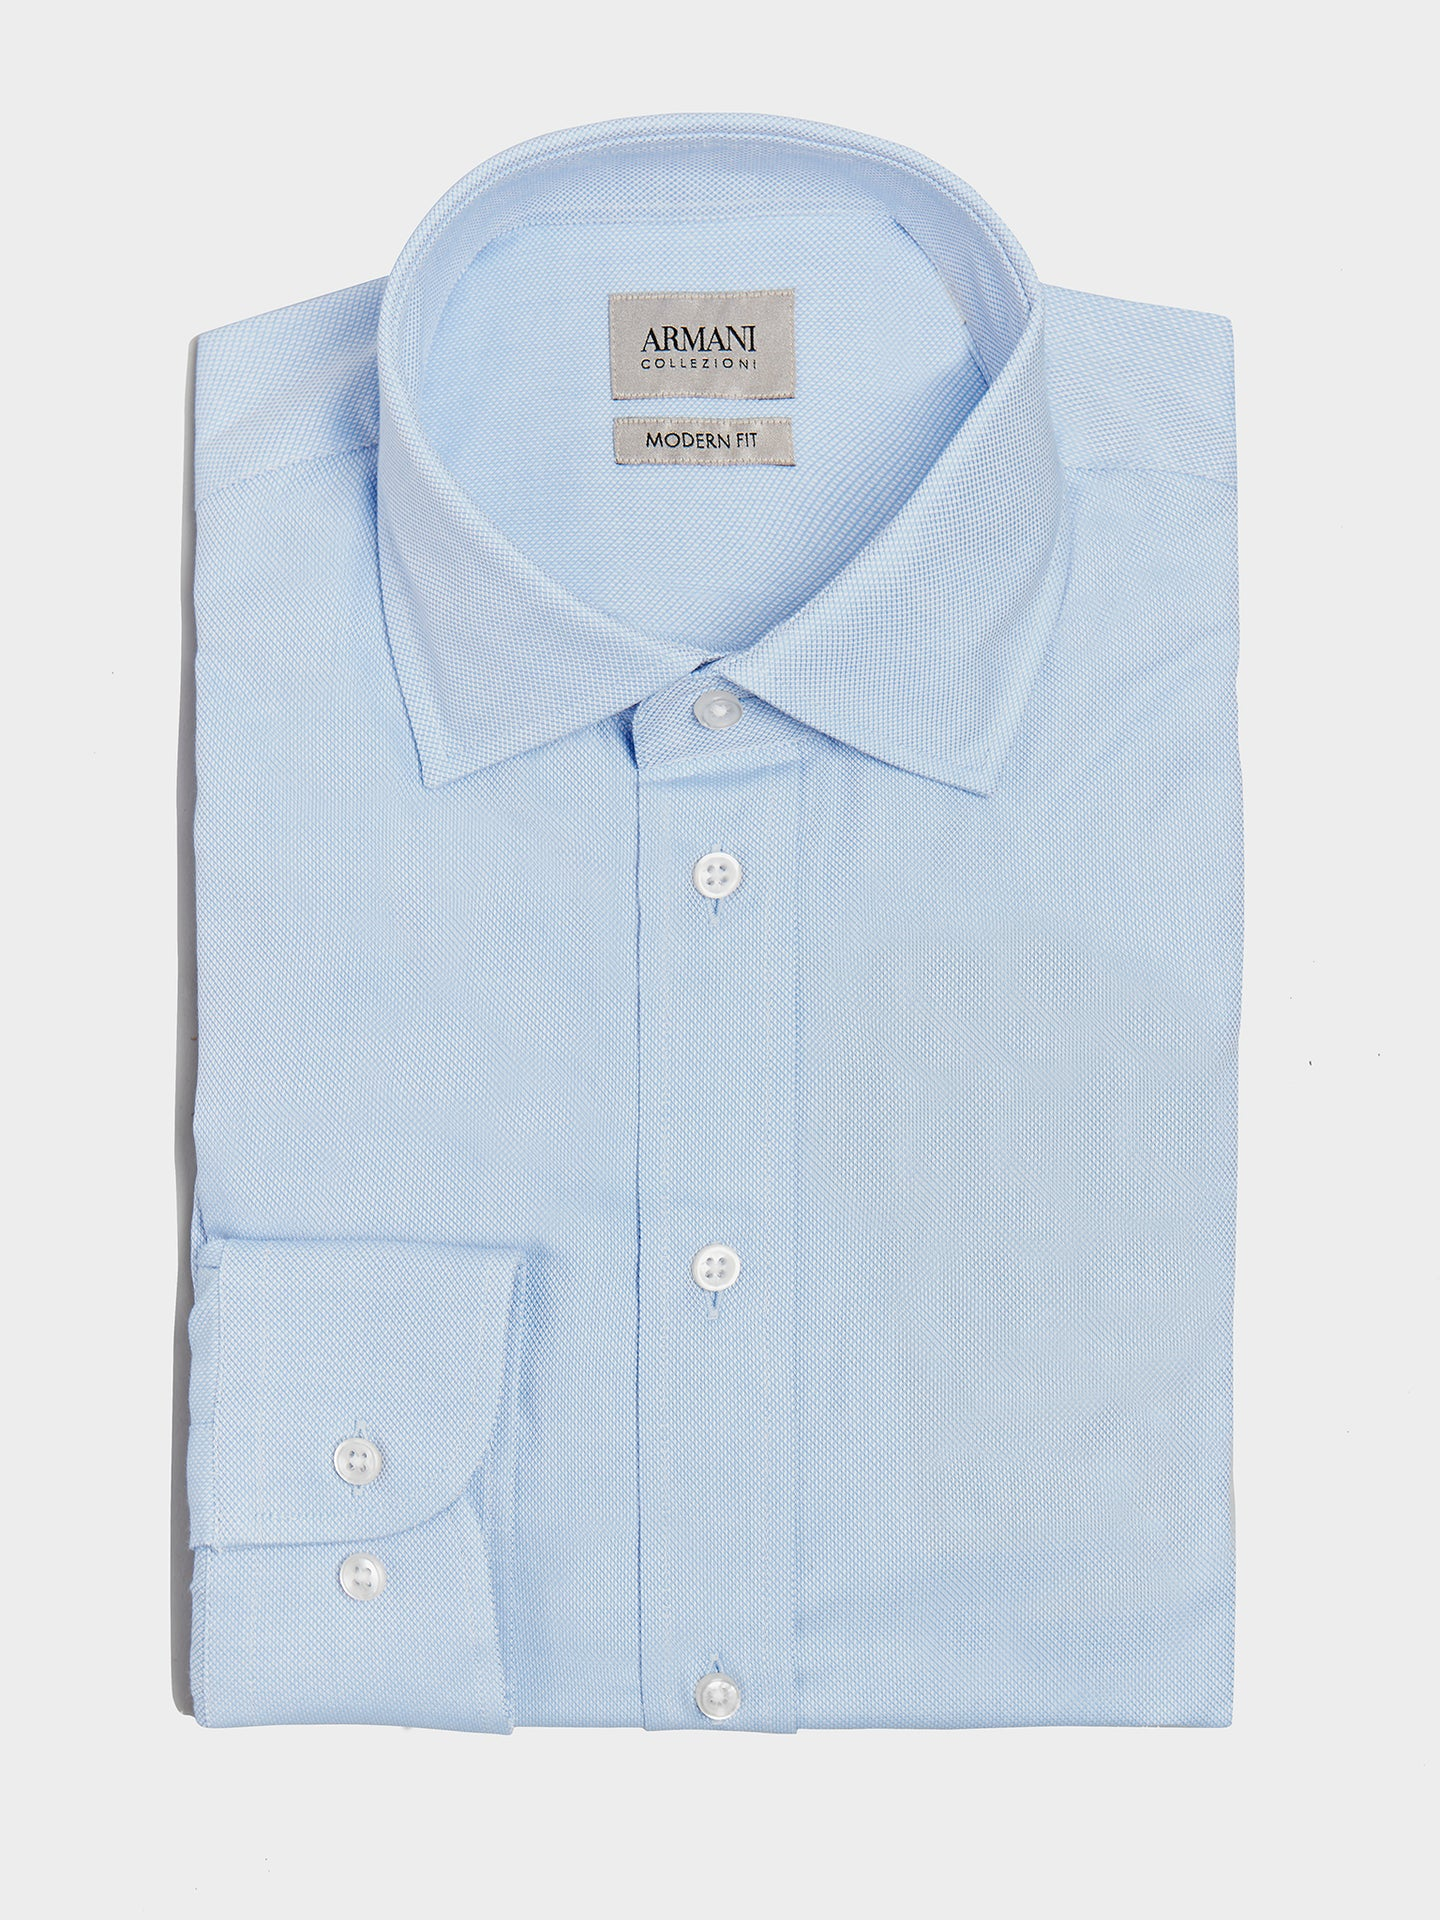 Armani Collezioni Twill Shirt (Light Blue)